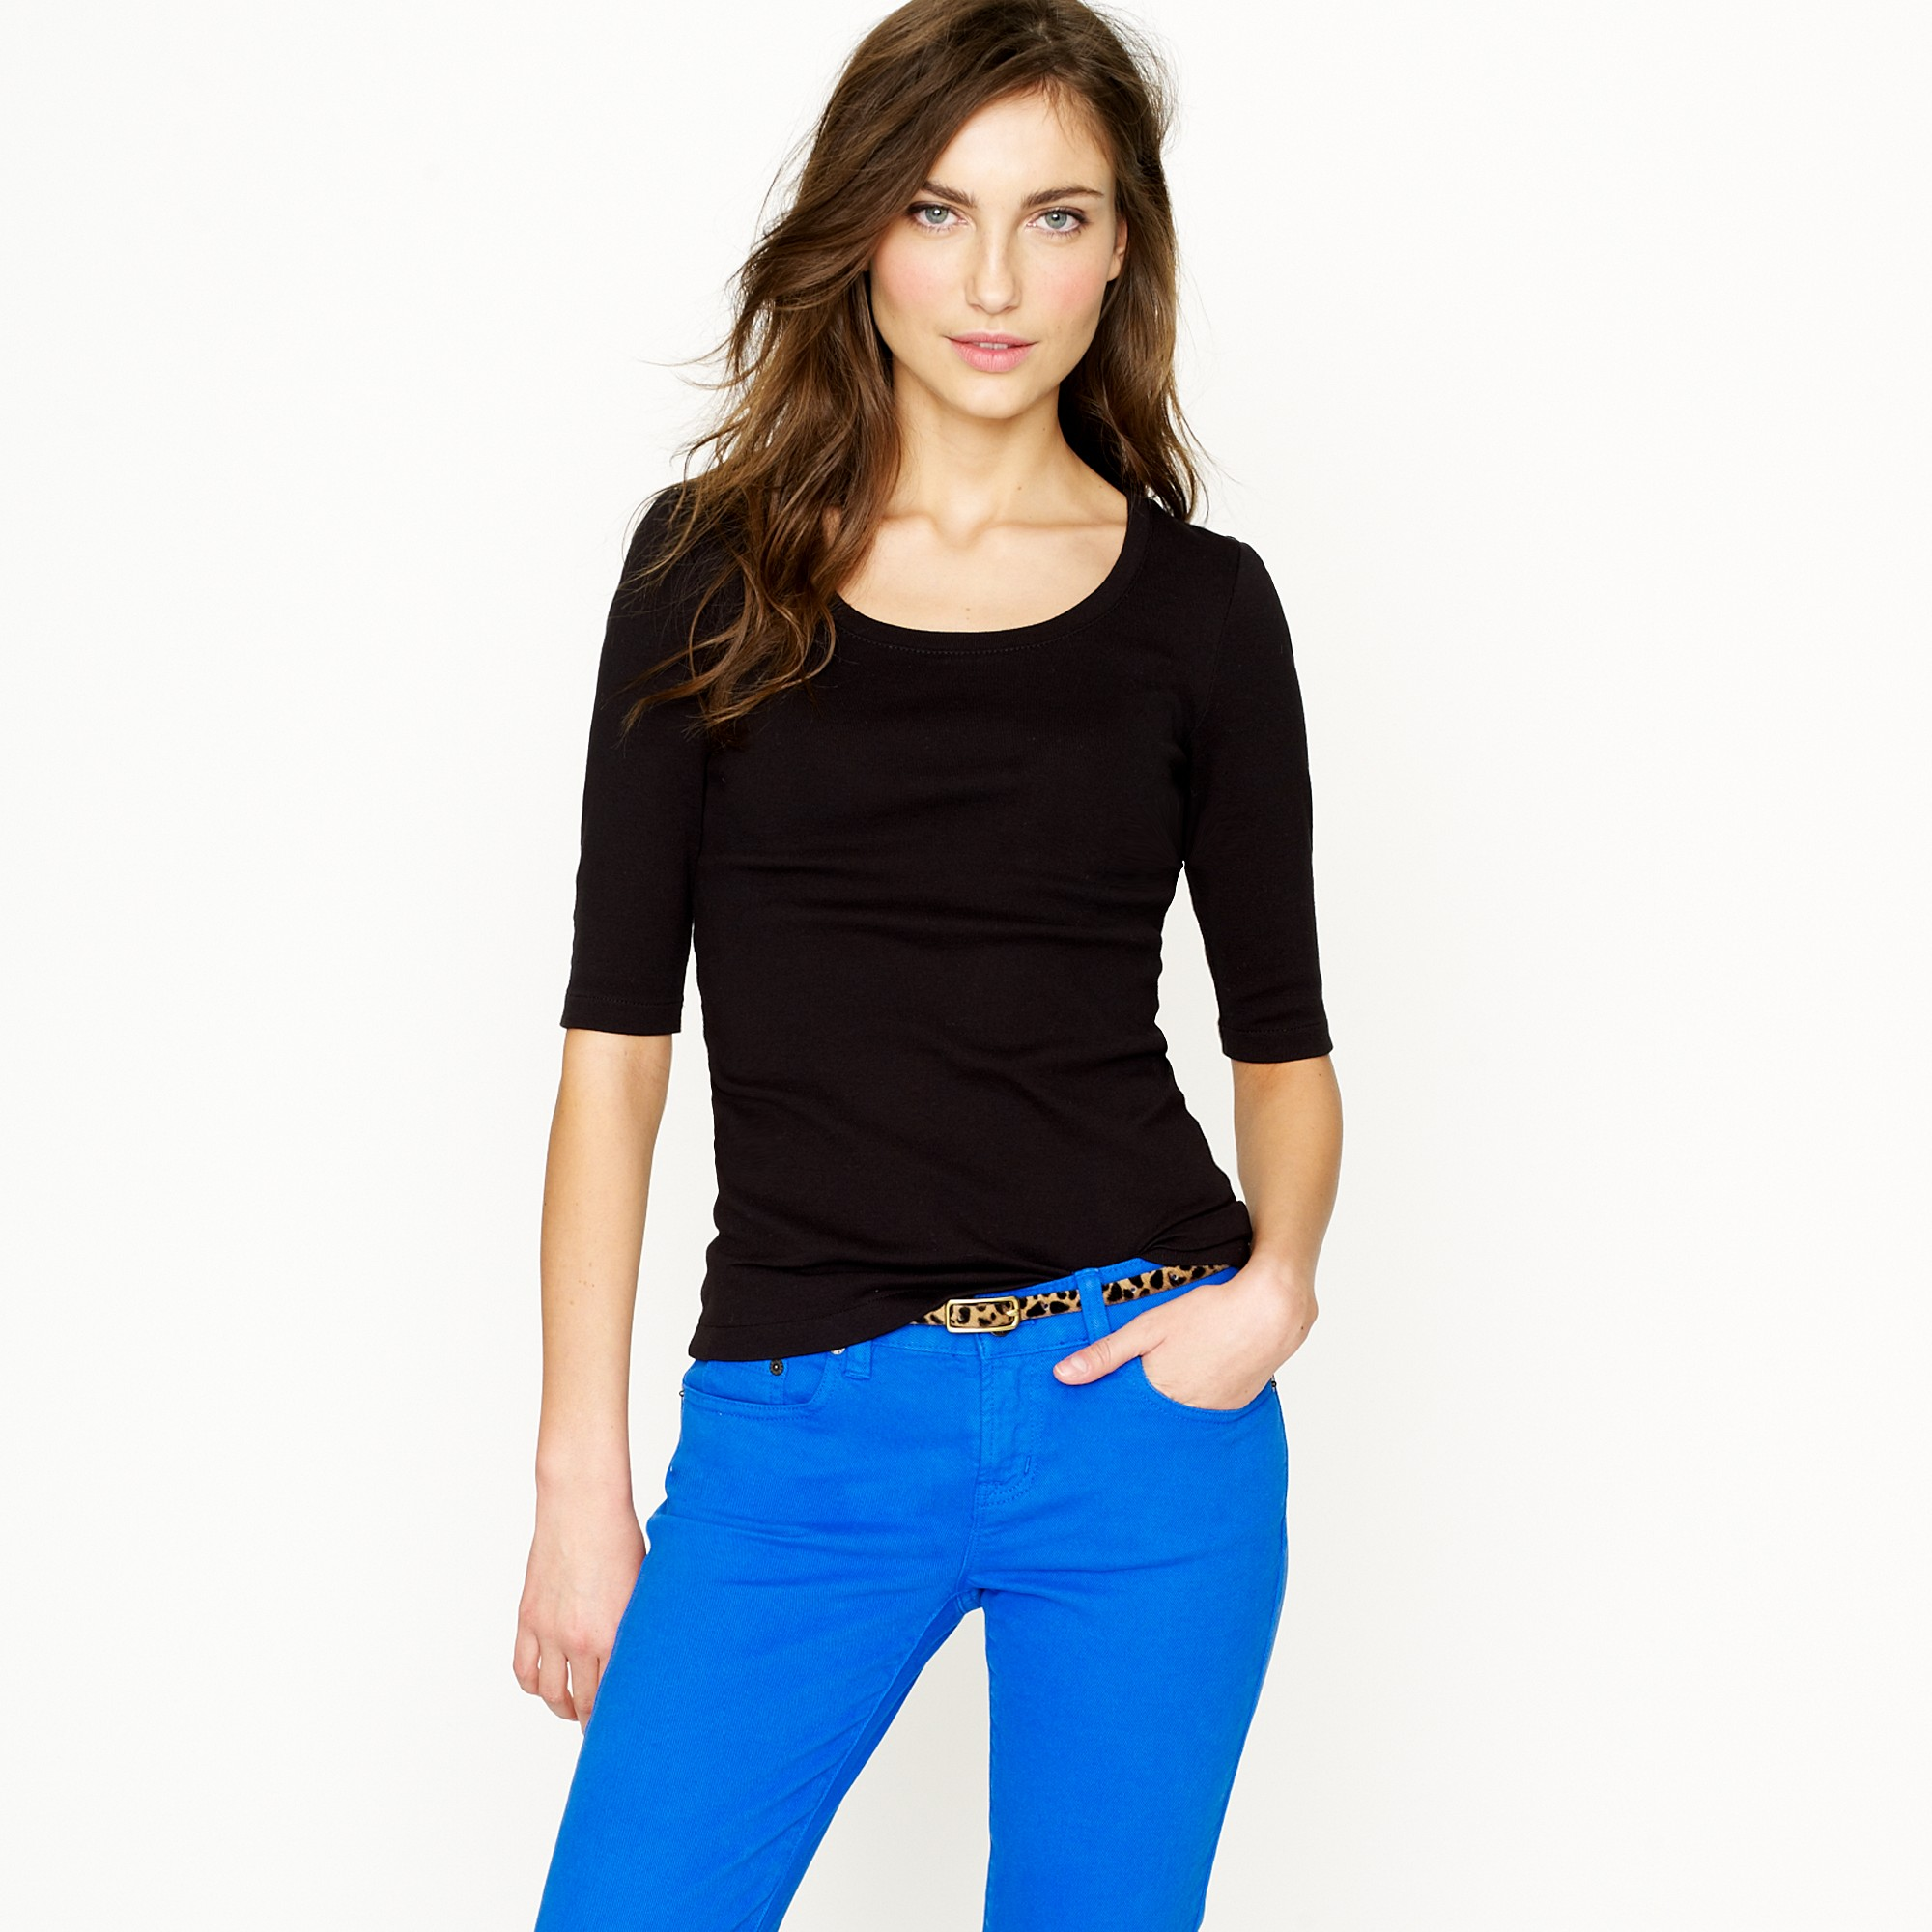 0480bbeb5b82 J.Crew Perfect-Fit Ballet Button Tee in Black - Lyst